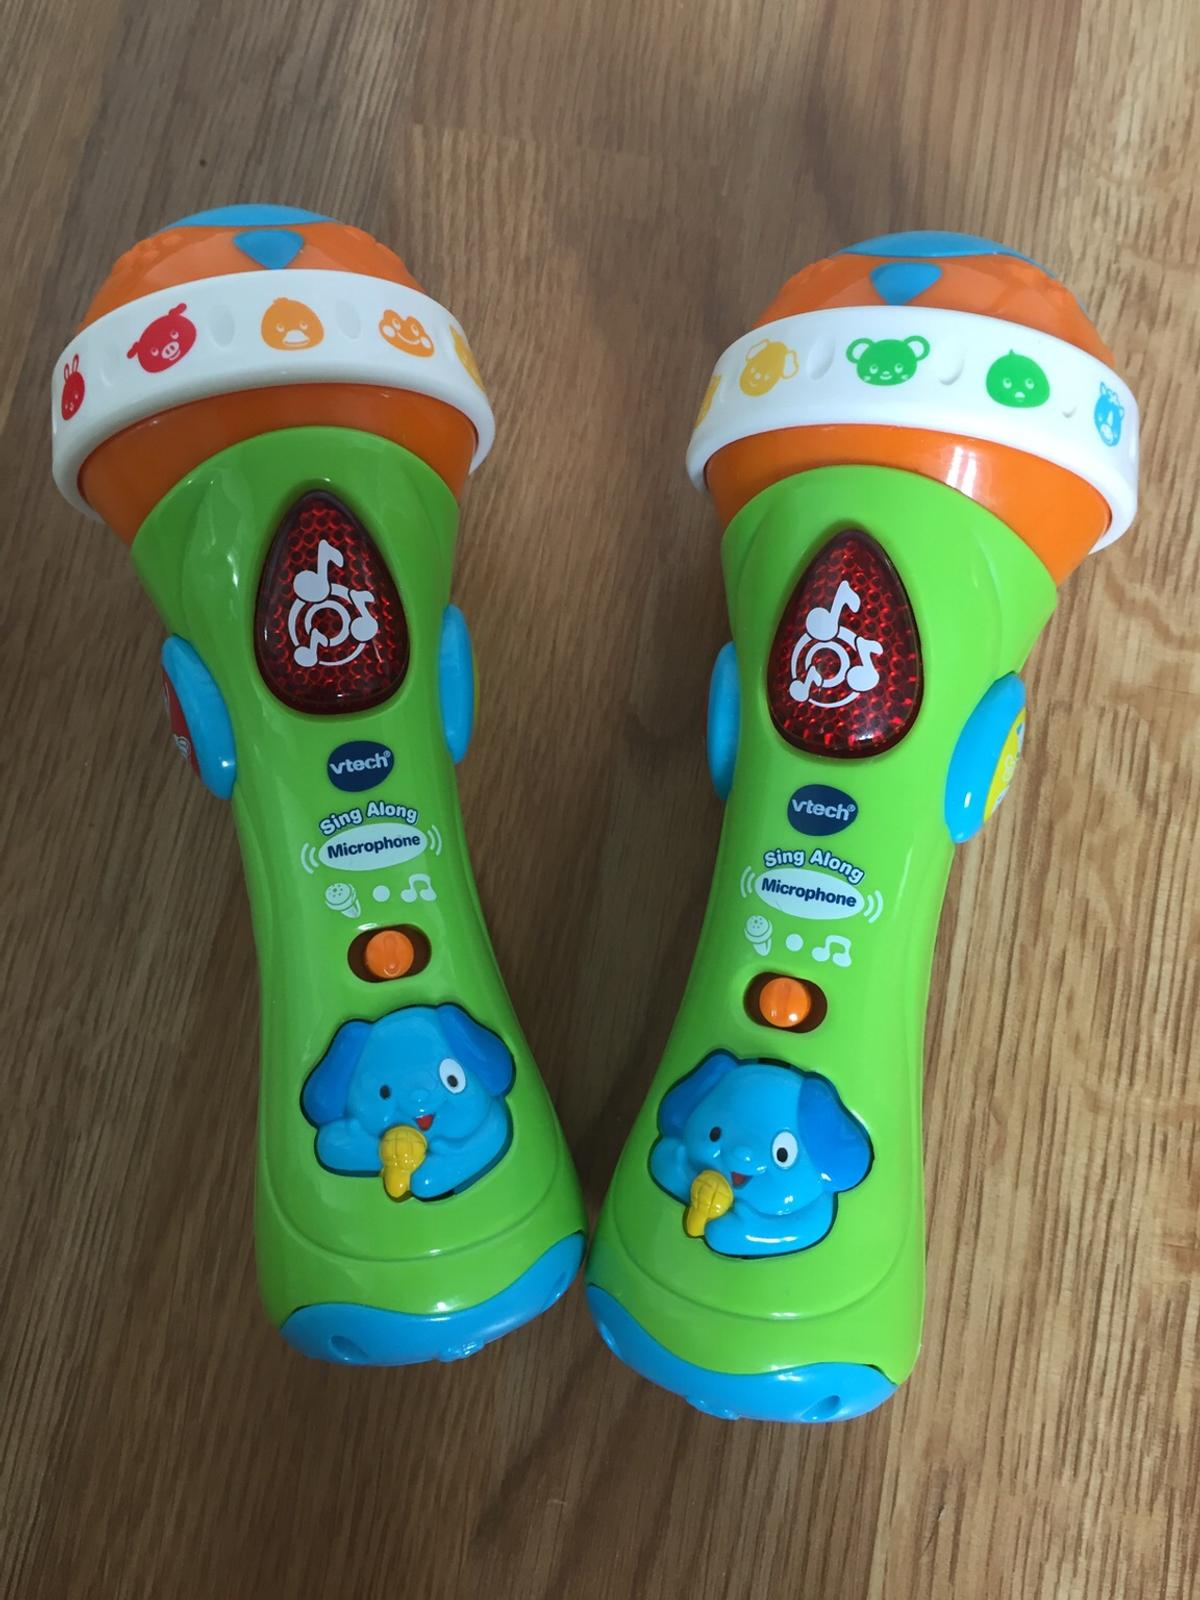 merry go round and interactive mics, all in good working order. Hardly used. Price is for both. Reduce price as sold items have been removed